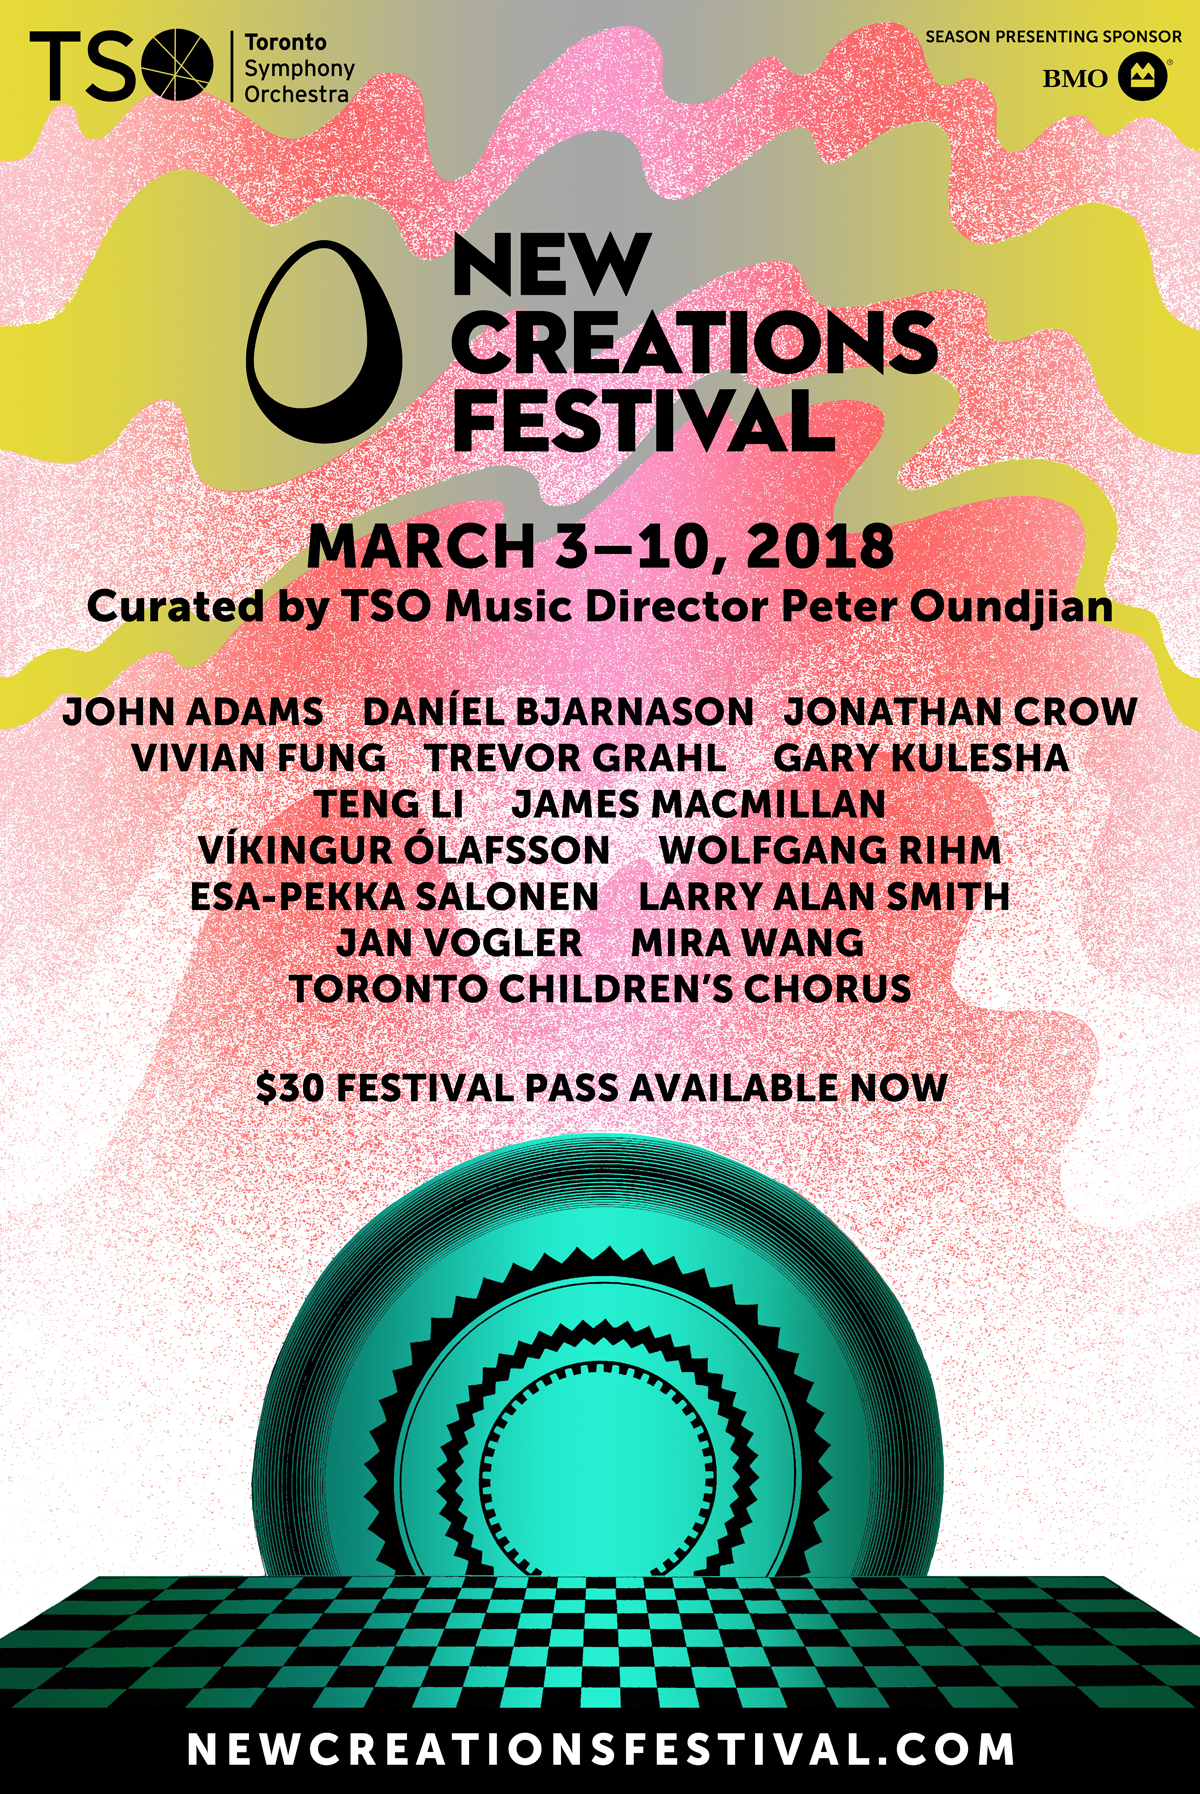 New Creations Festival 2018  alternate version  Toronto Symphony Orchestra